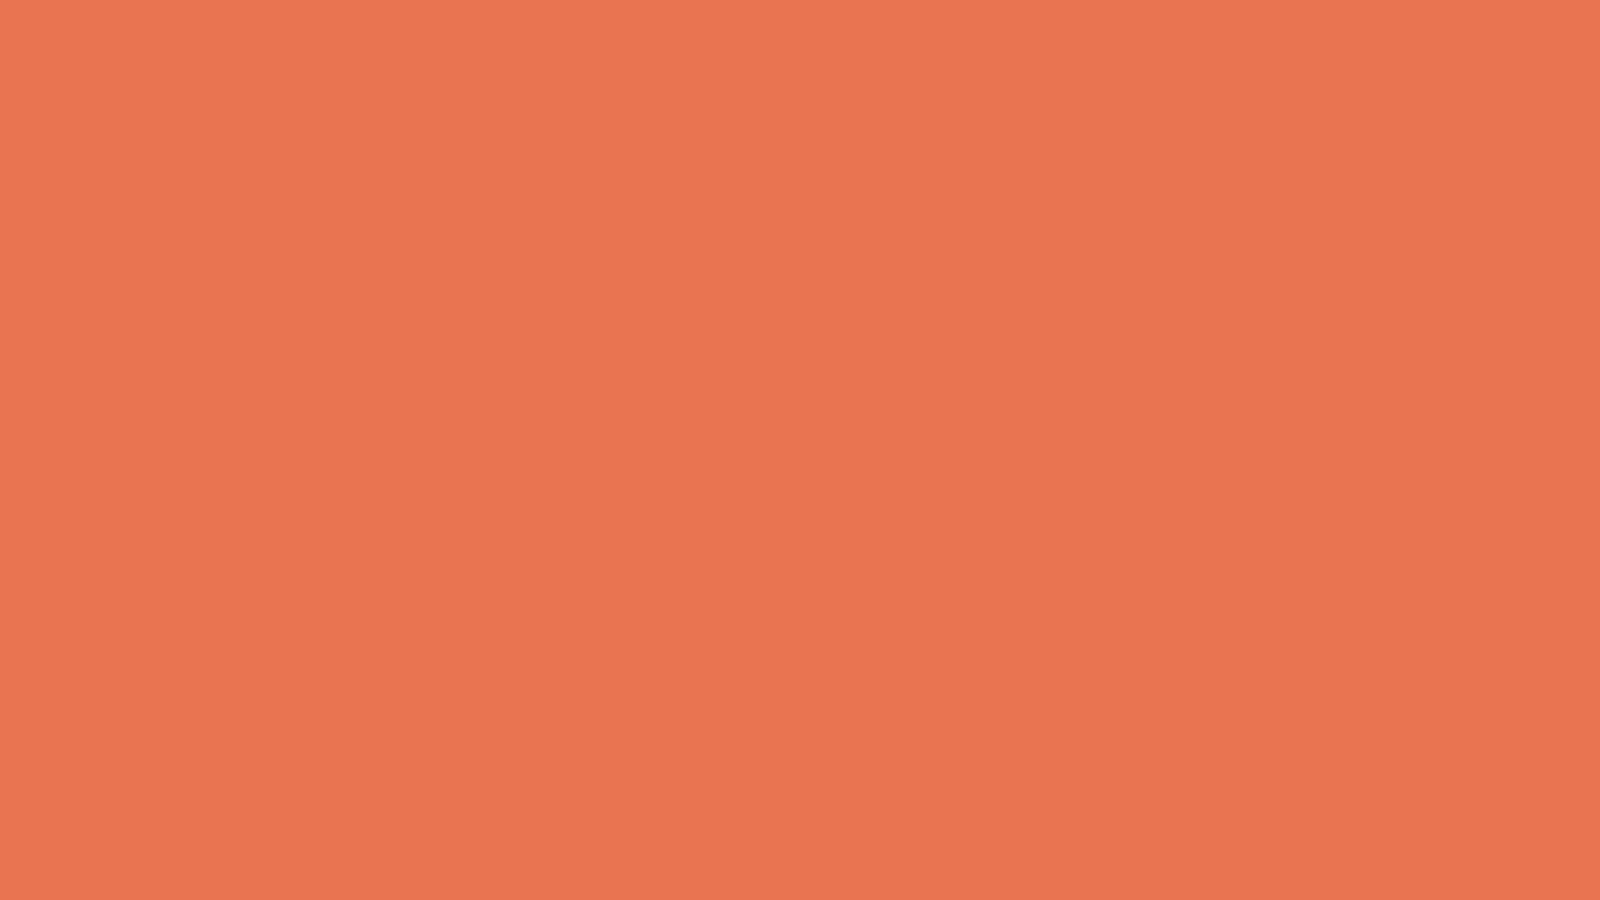 1600x900 Light Red Ochre Solid Color Background